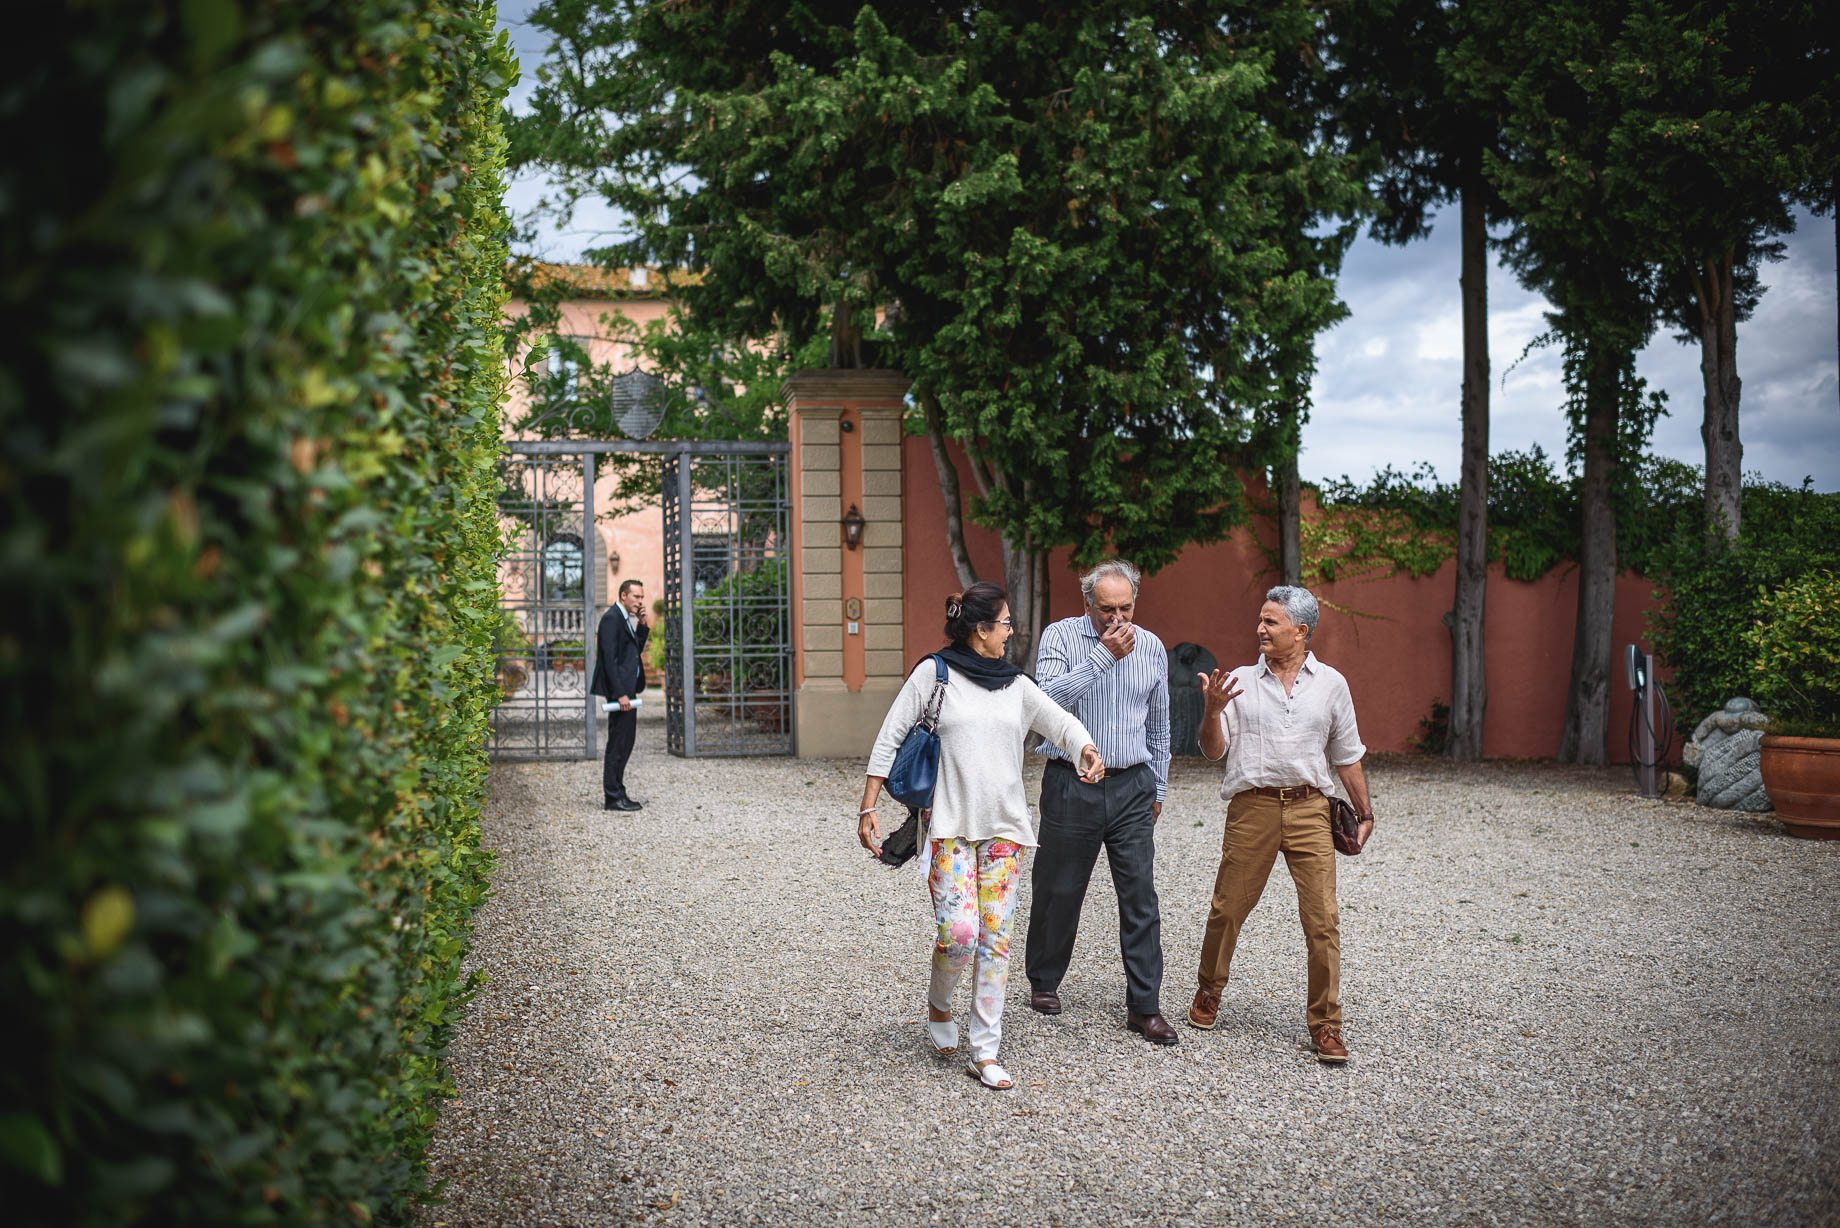 Tuscany wedding photography - Roisin and Moubin - Guy Collier Photography (9 of 251)